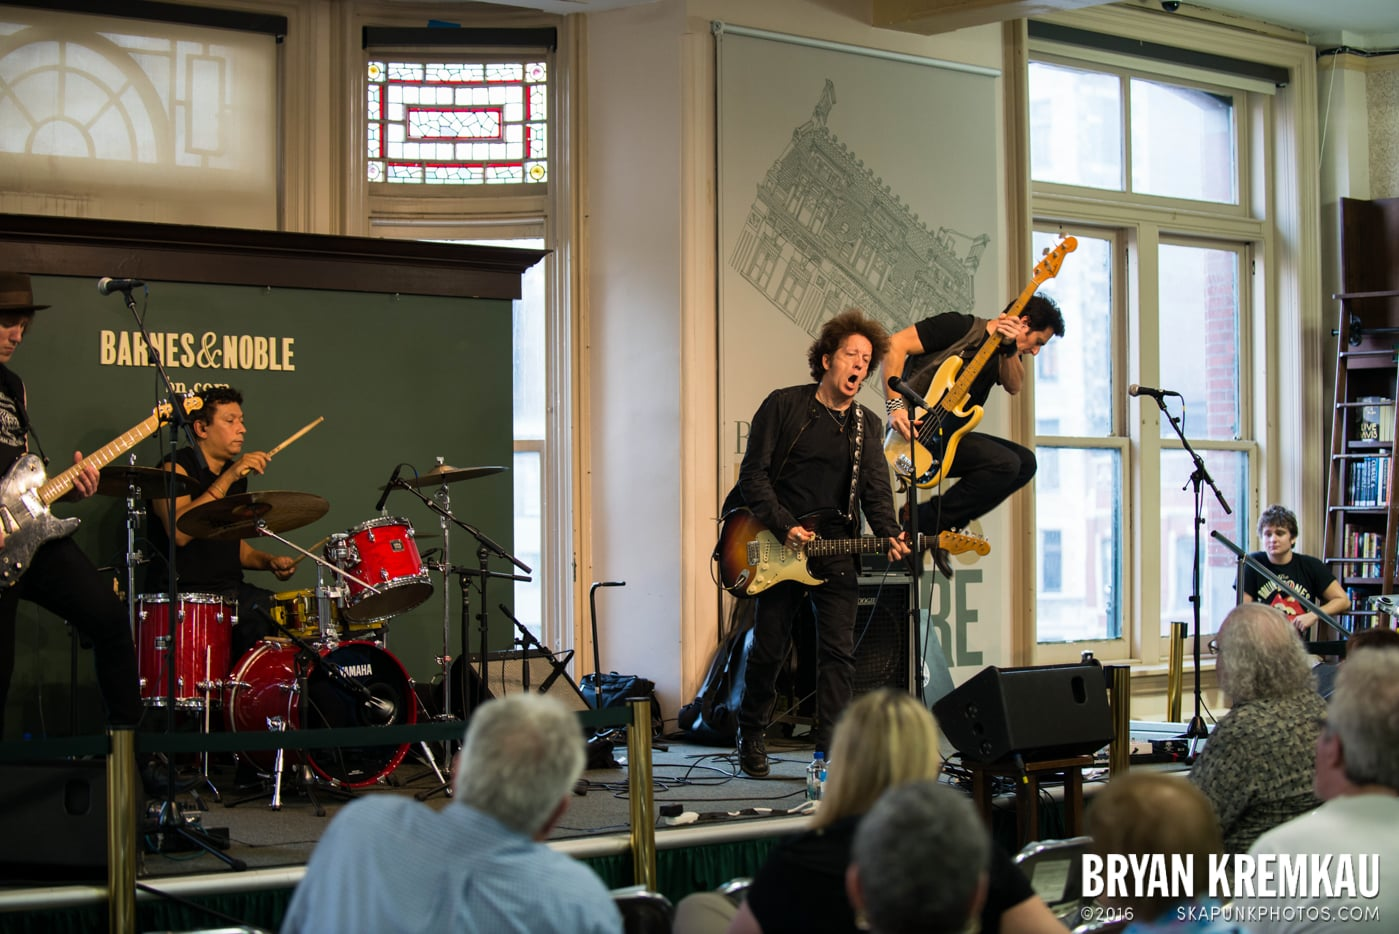 Willie Nile @ Barnes & Noble Union Square, NYC - June 25th 2013 (17)